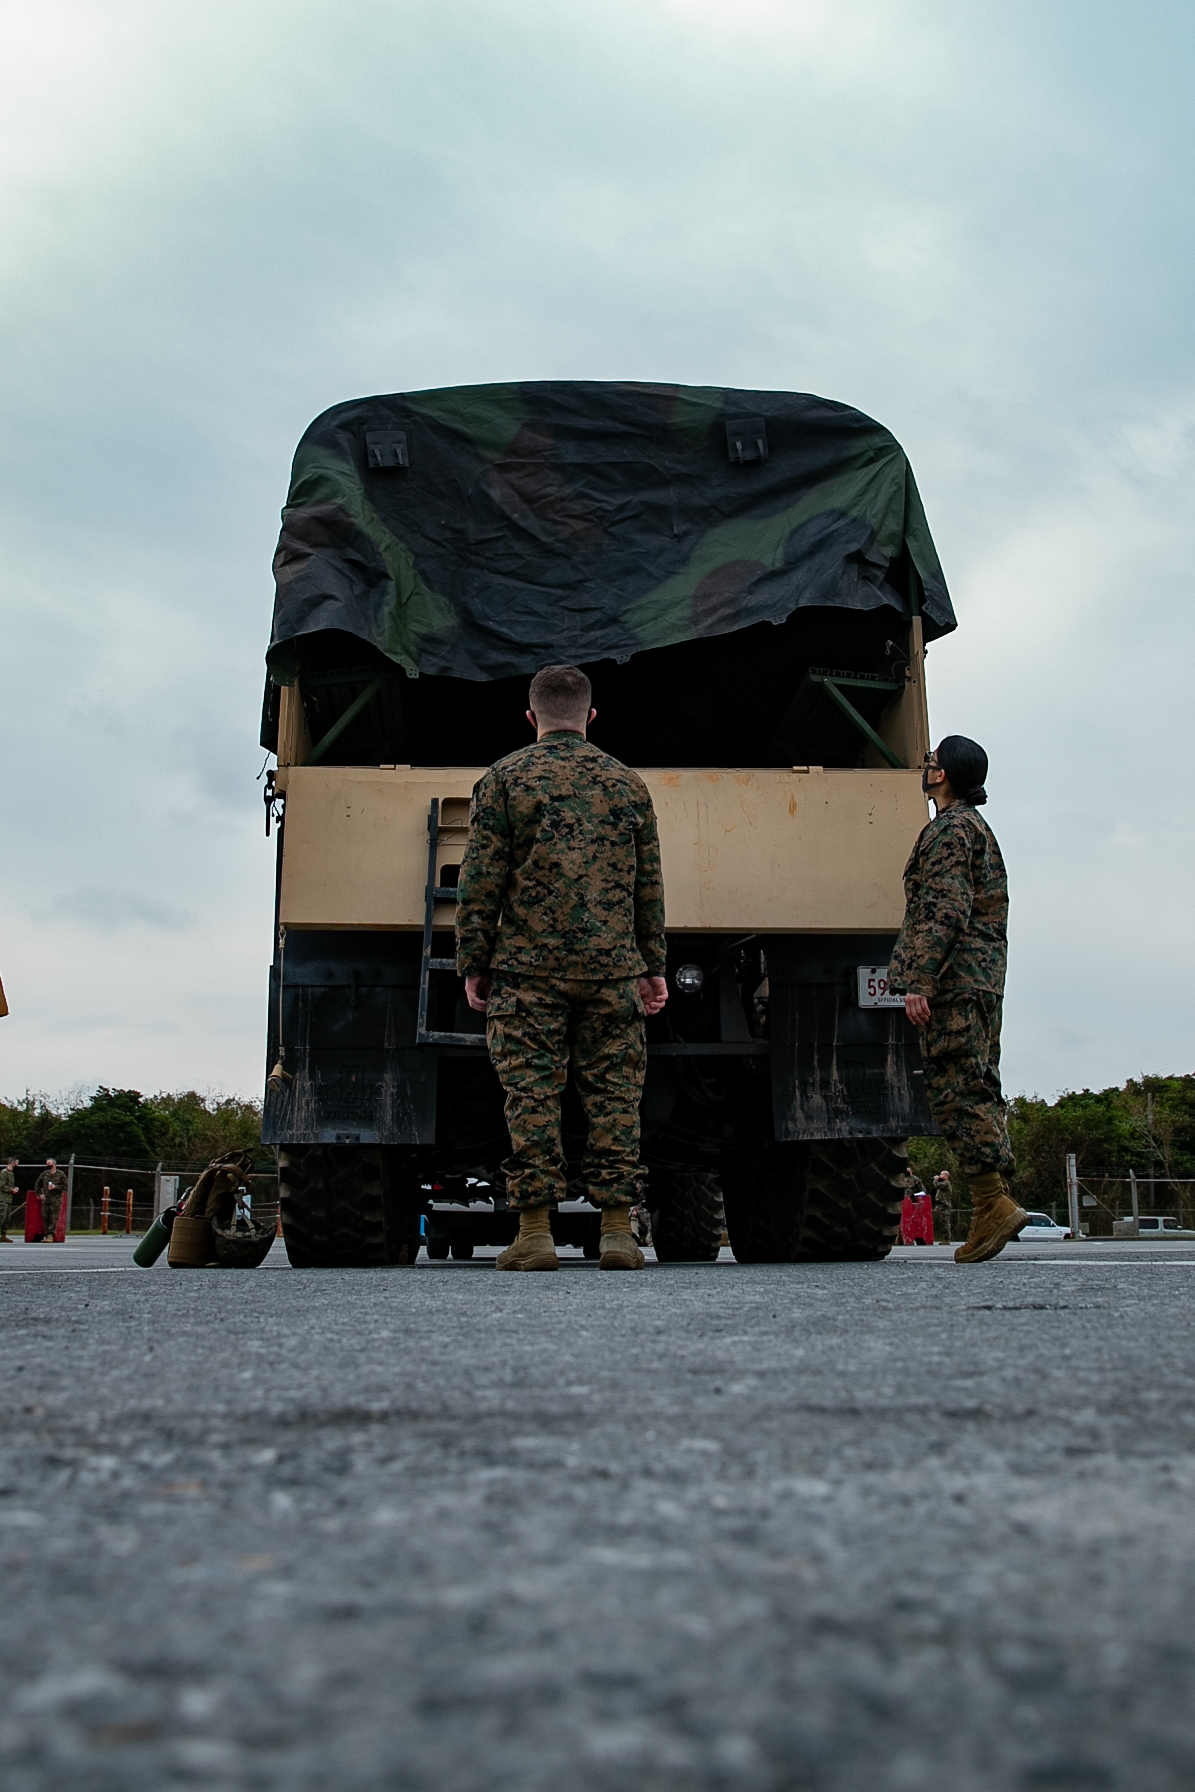 U.S. Marines with 3rd Landing Support Battalion, 3rd Marine Logistics Group, palletize gear in preparation for 3rd Marine Expeditionary Brigade's (MEB) deployment on Kadena Air Force Base, Okinawa, Japan, Jan. 21, 2021. 3rd MEB practices distributed operations as part of the Marine Corps' only forward-deployed force. (U.S. Marine Corps photo by Lance Cpl. Natalie Greenwood)